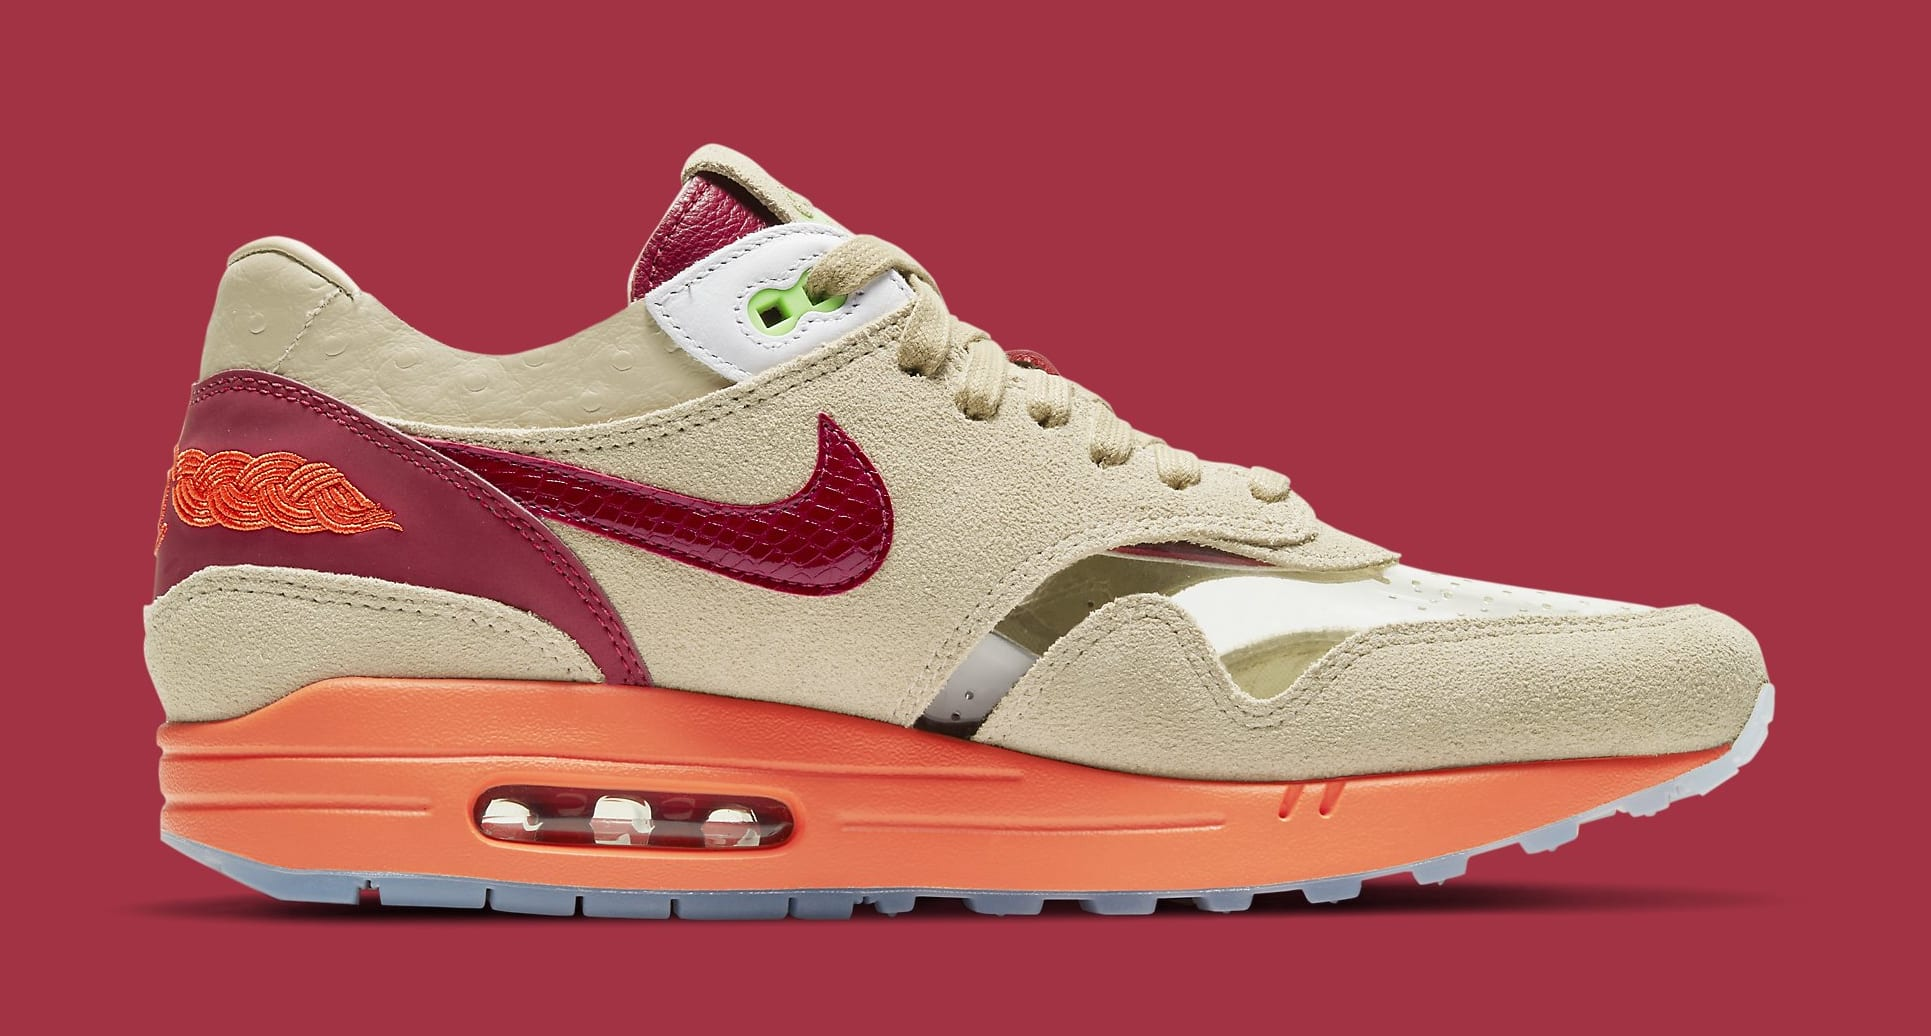 Clot x Nike Air Max 1 'Kiss of Death' 2021 DD1870-100 Medial